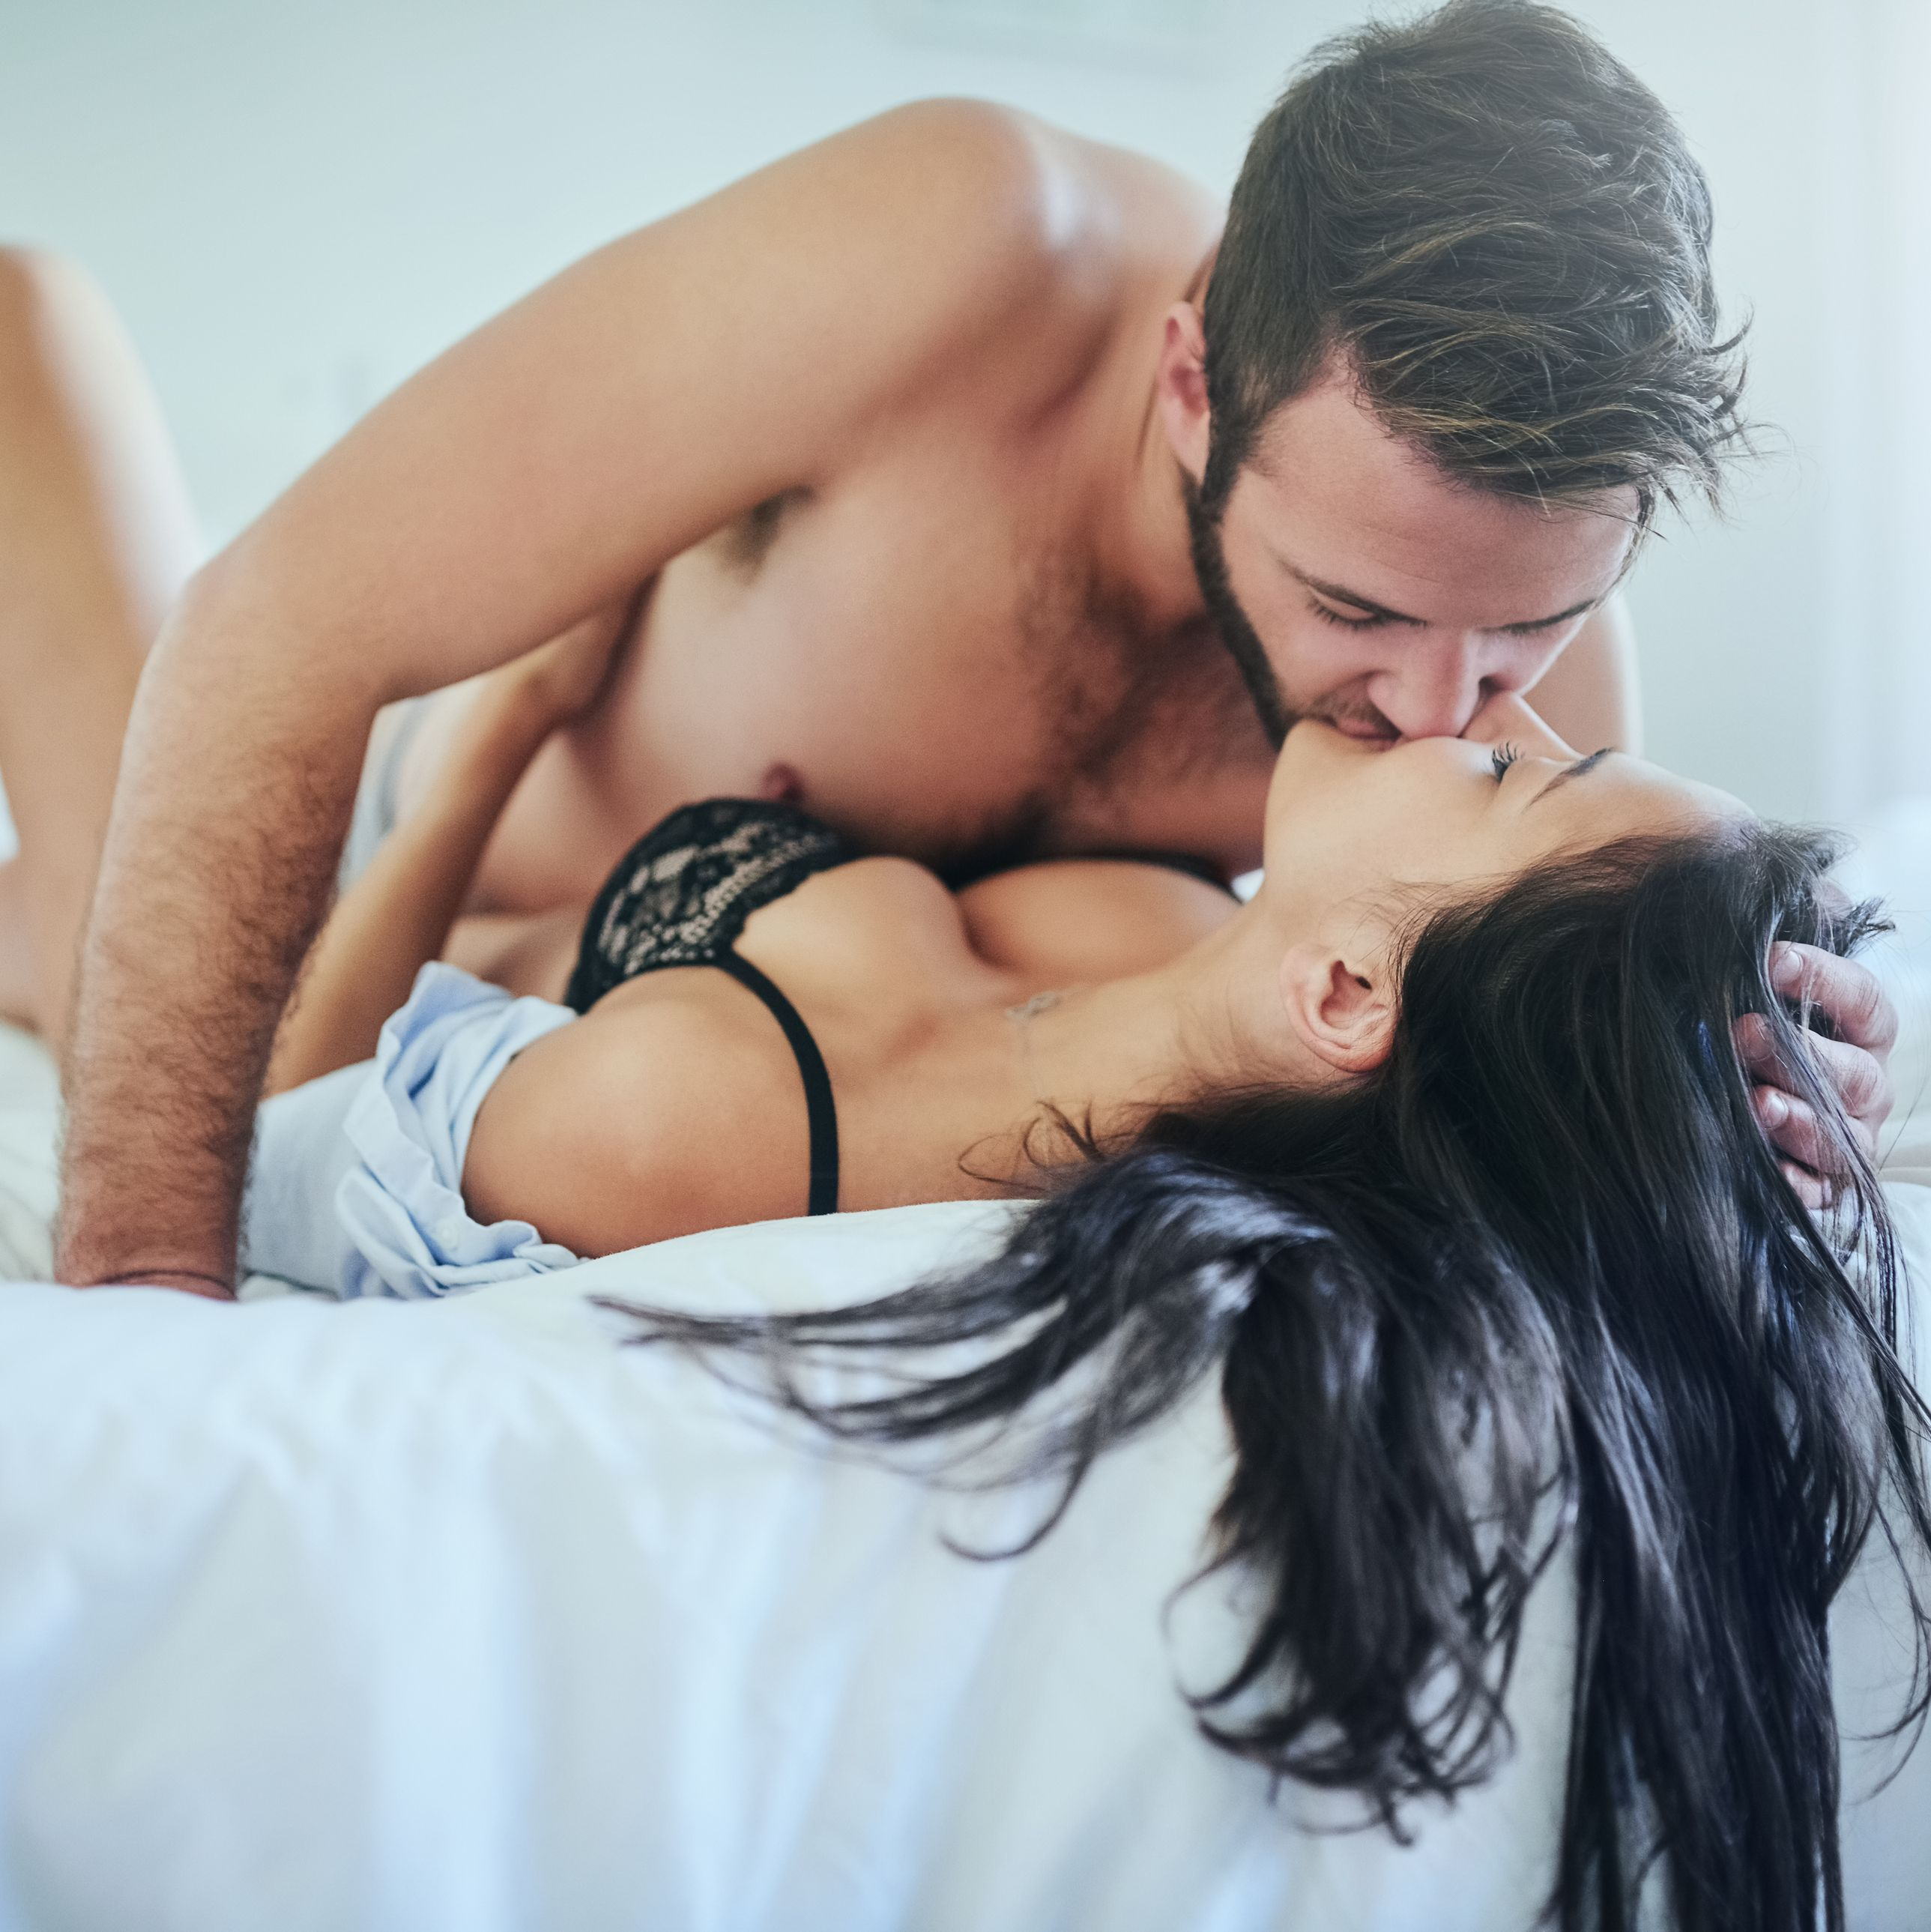 7 Ways to Take Missionary Sex to the Next Level